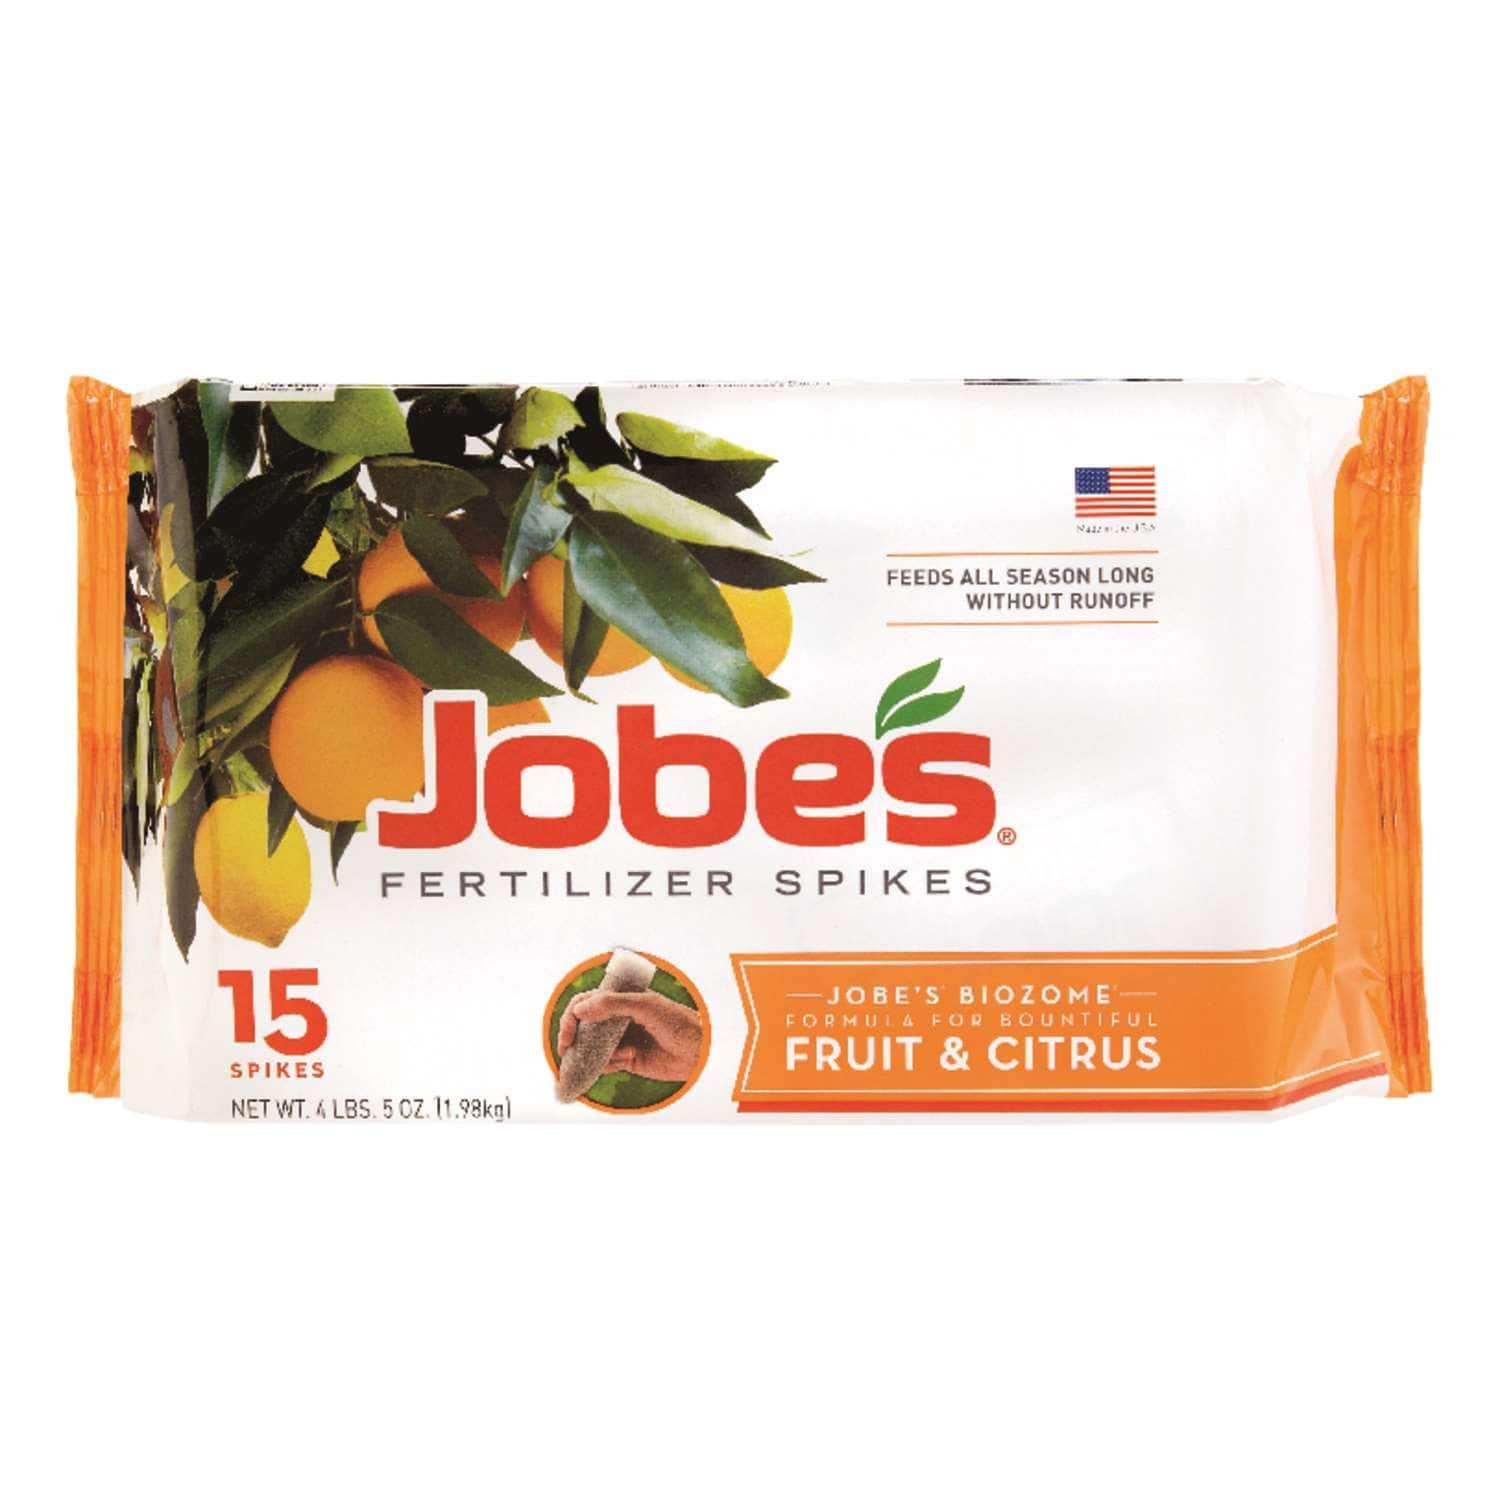 Jobe's Fertilizer Spikes: 15-Pack Citrus & Fruits or Evergreen $6, 5 Spikes for Palm $7 at Ace Hardware + Free Curbside Pickup